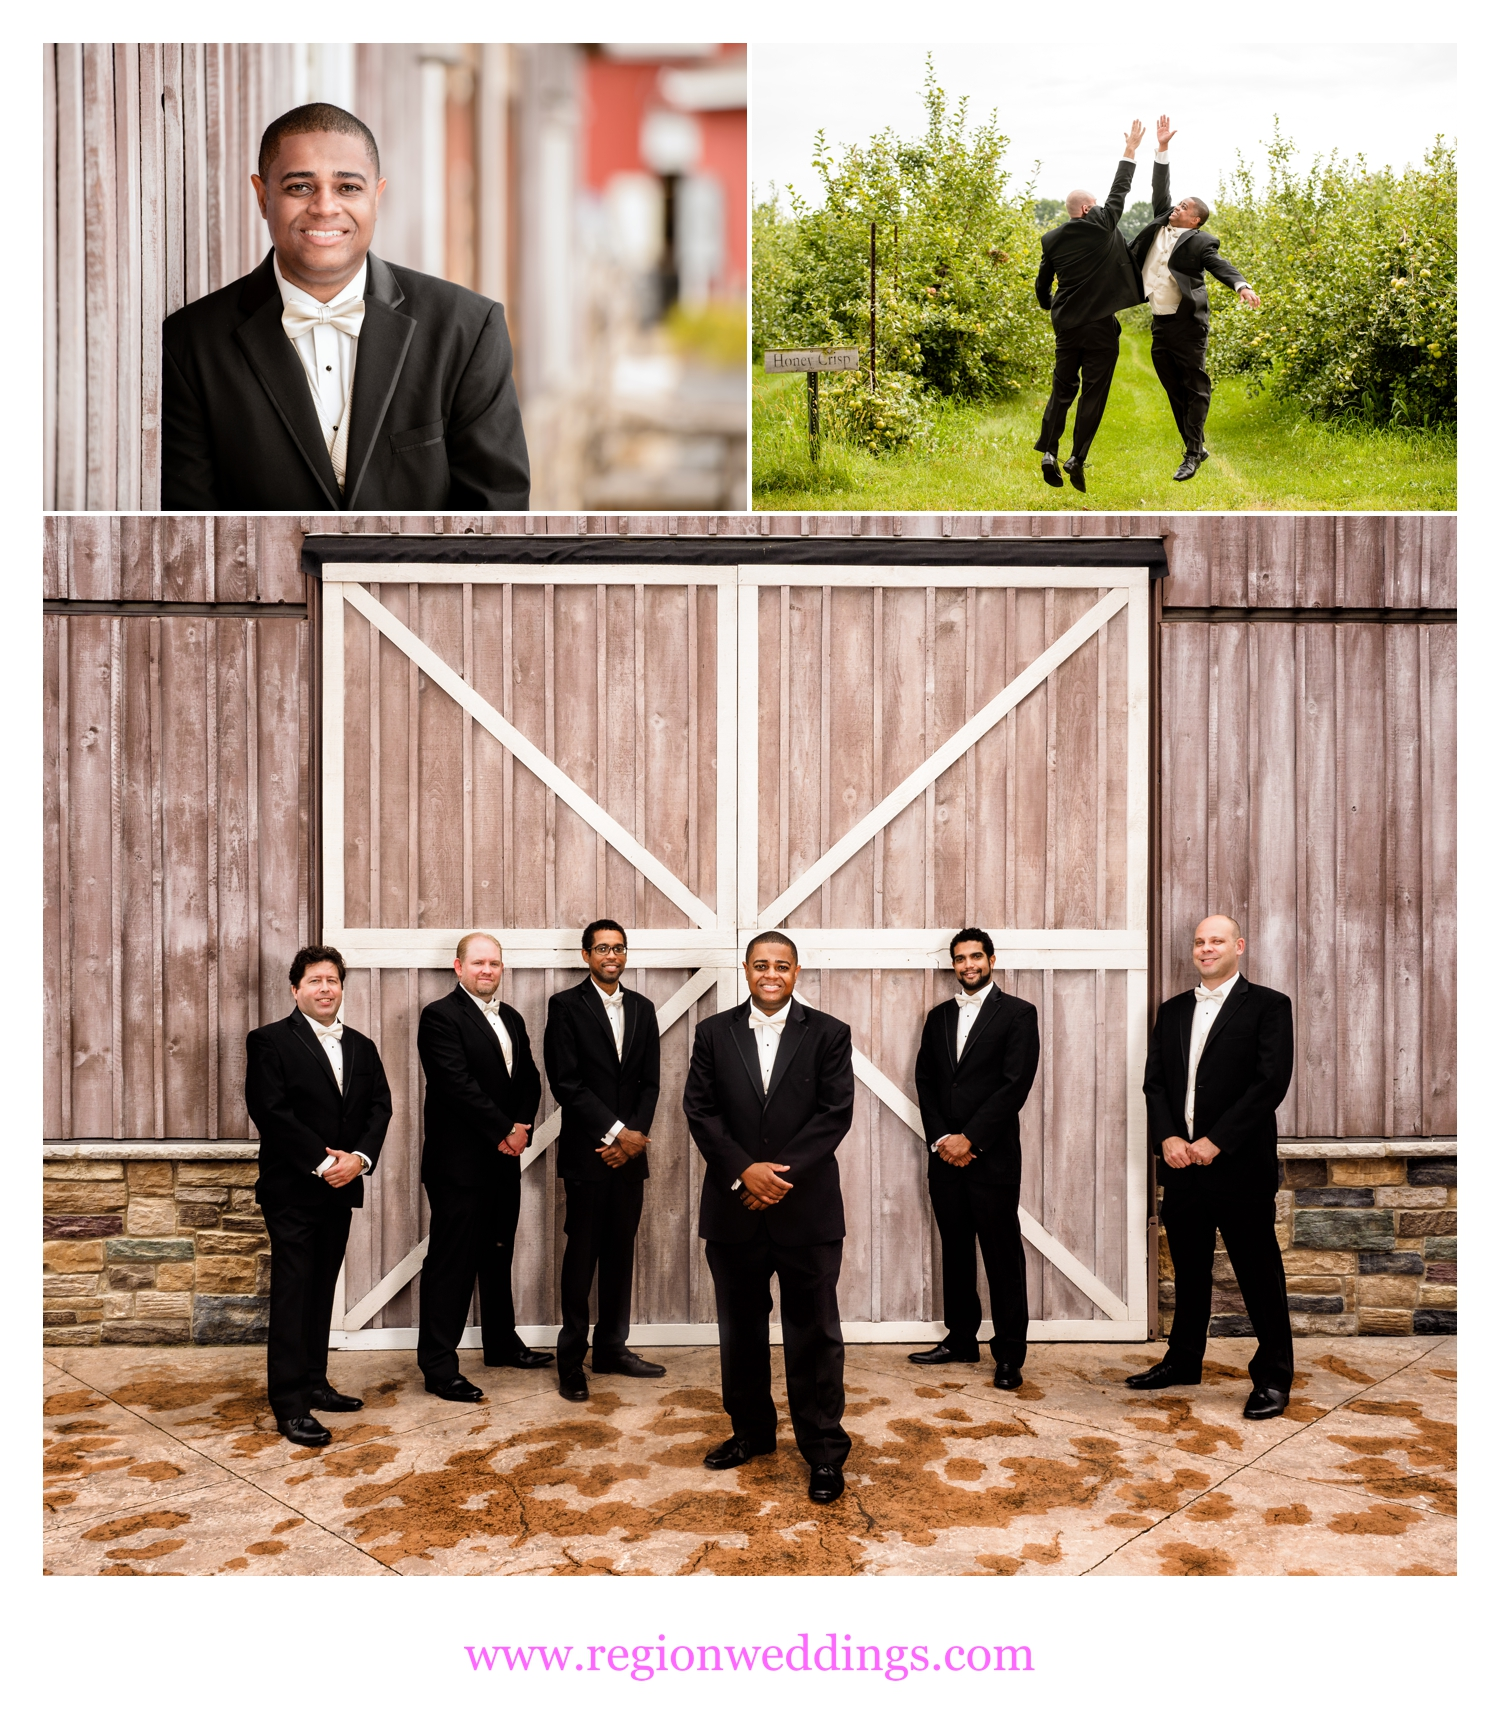 The groomsmen looking GQ at a barn wedding in Hobart, Indiana.